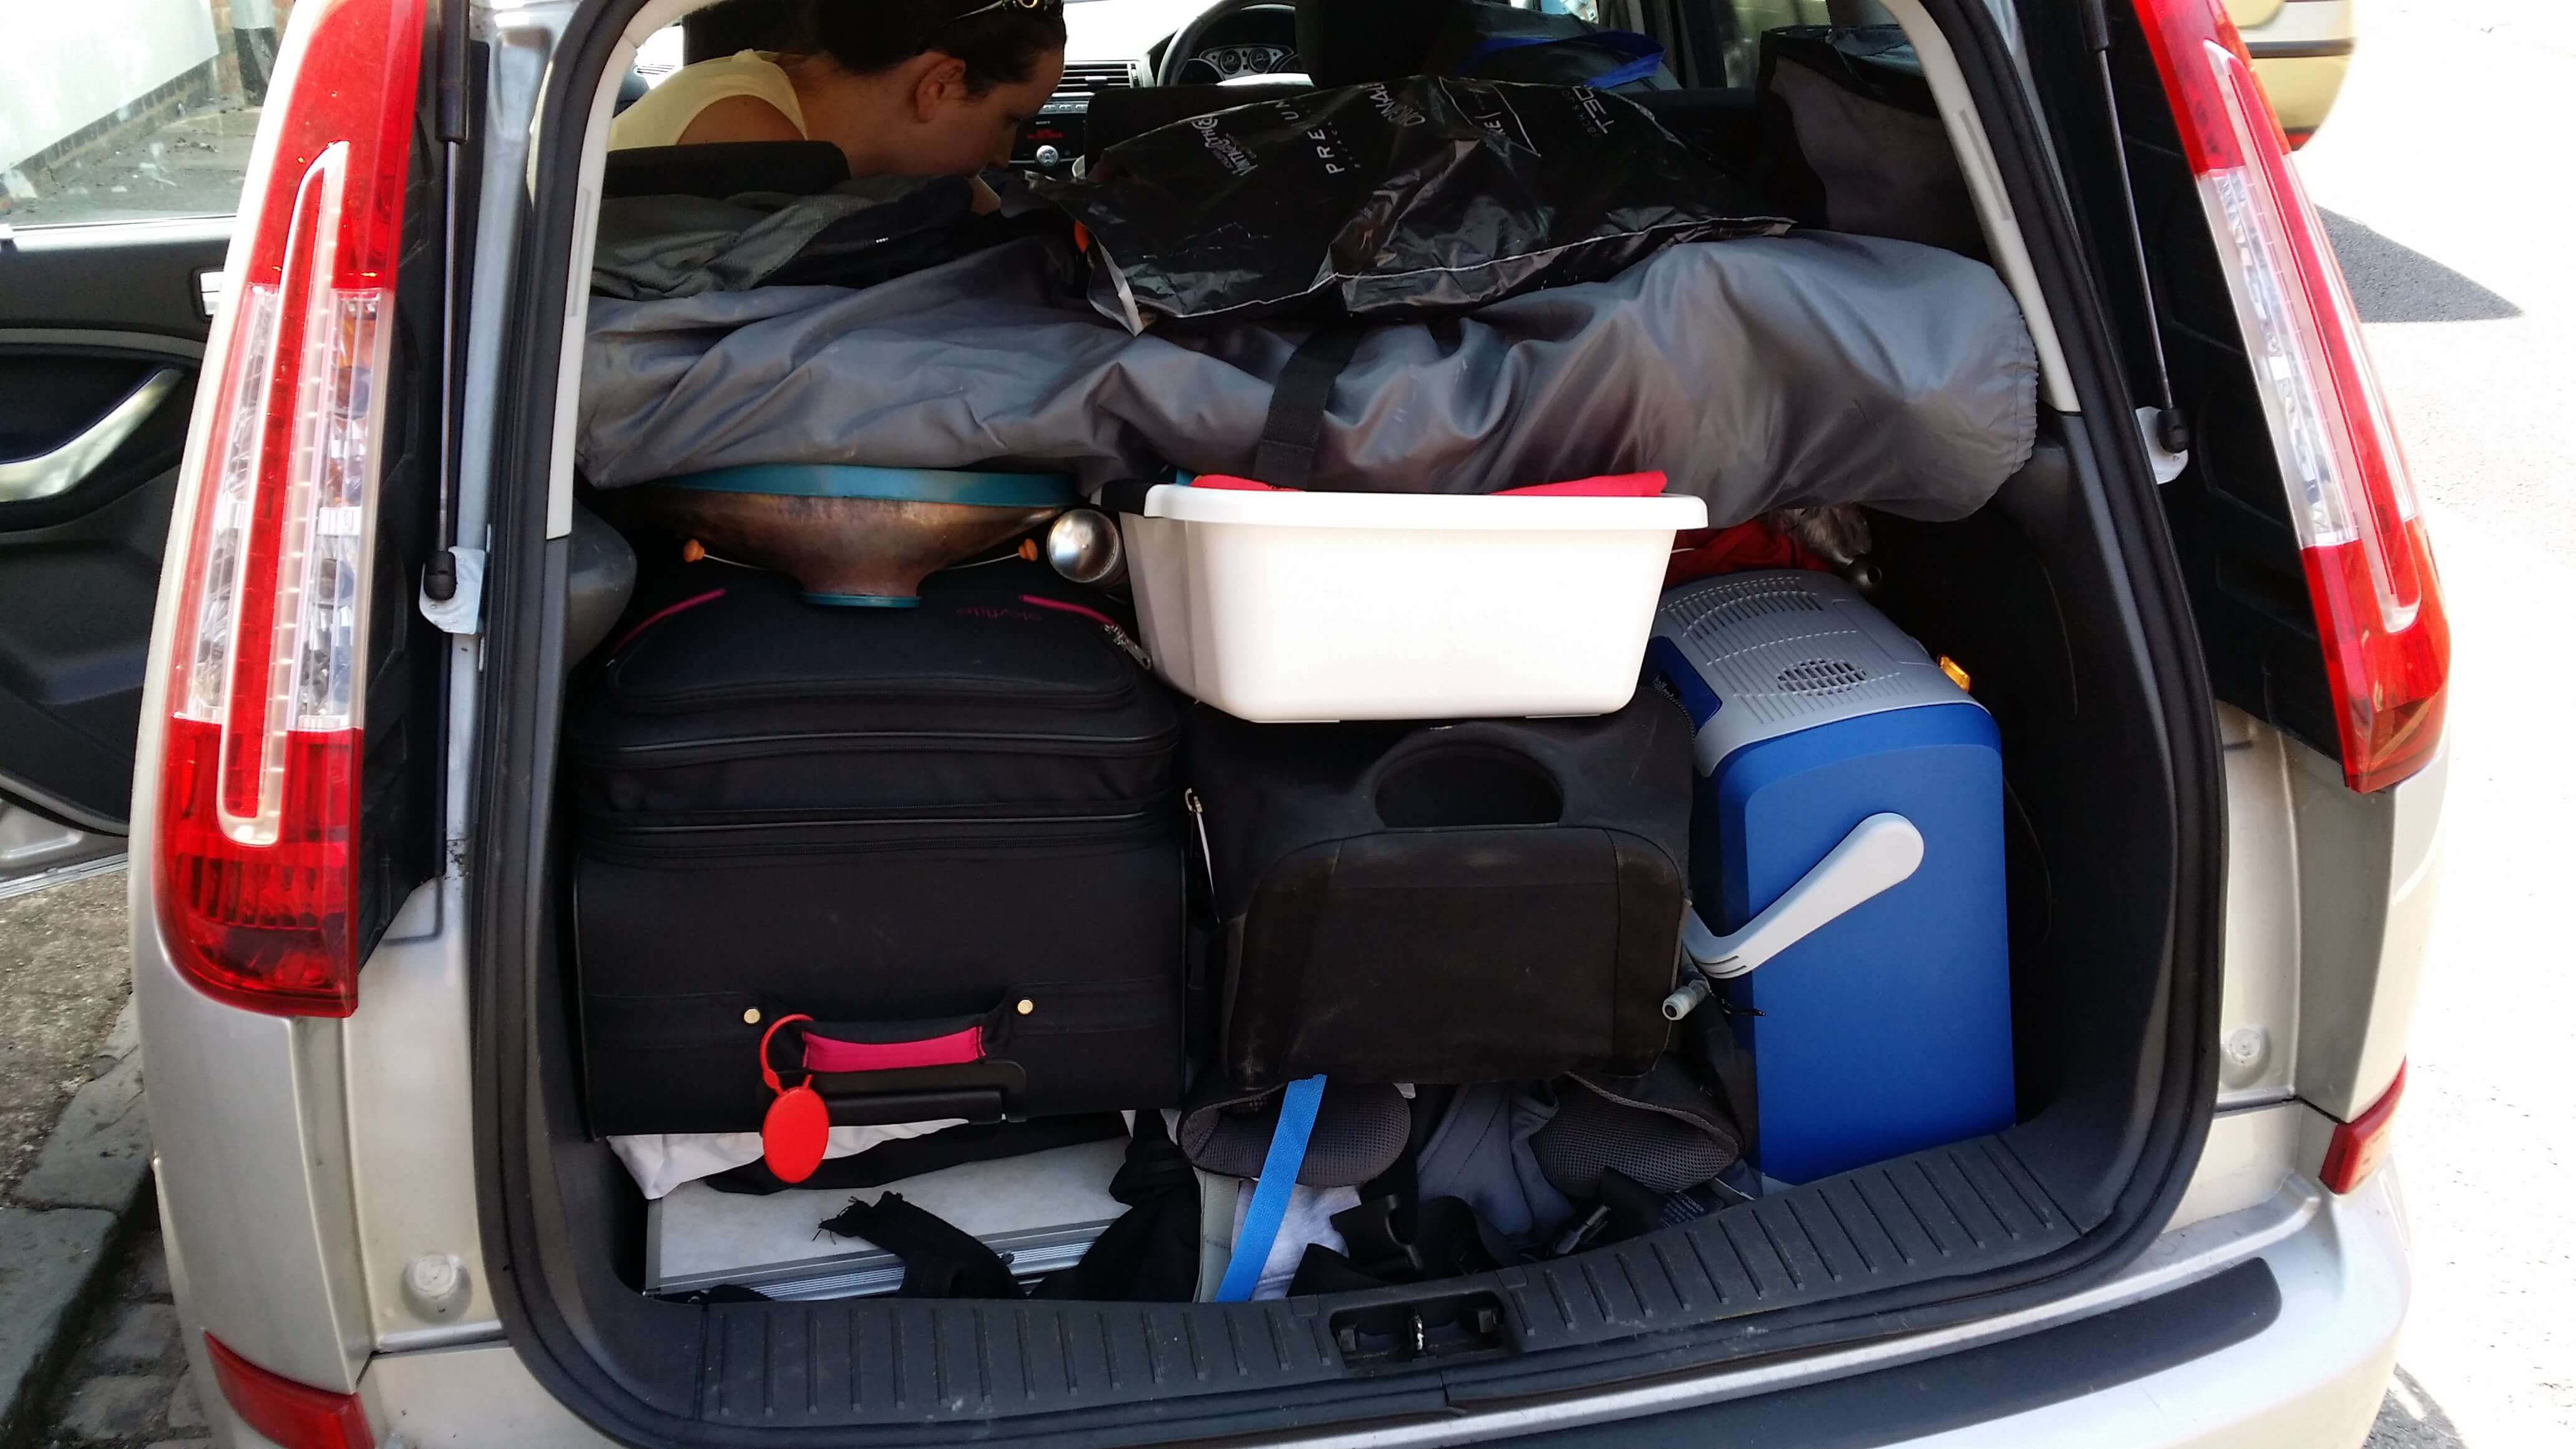 Mastering the mystic art of car tetris is vital to the whole camping experience